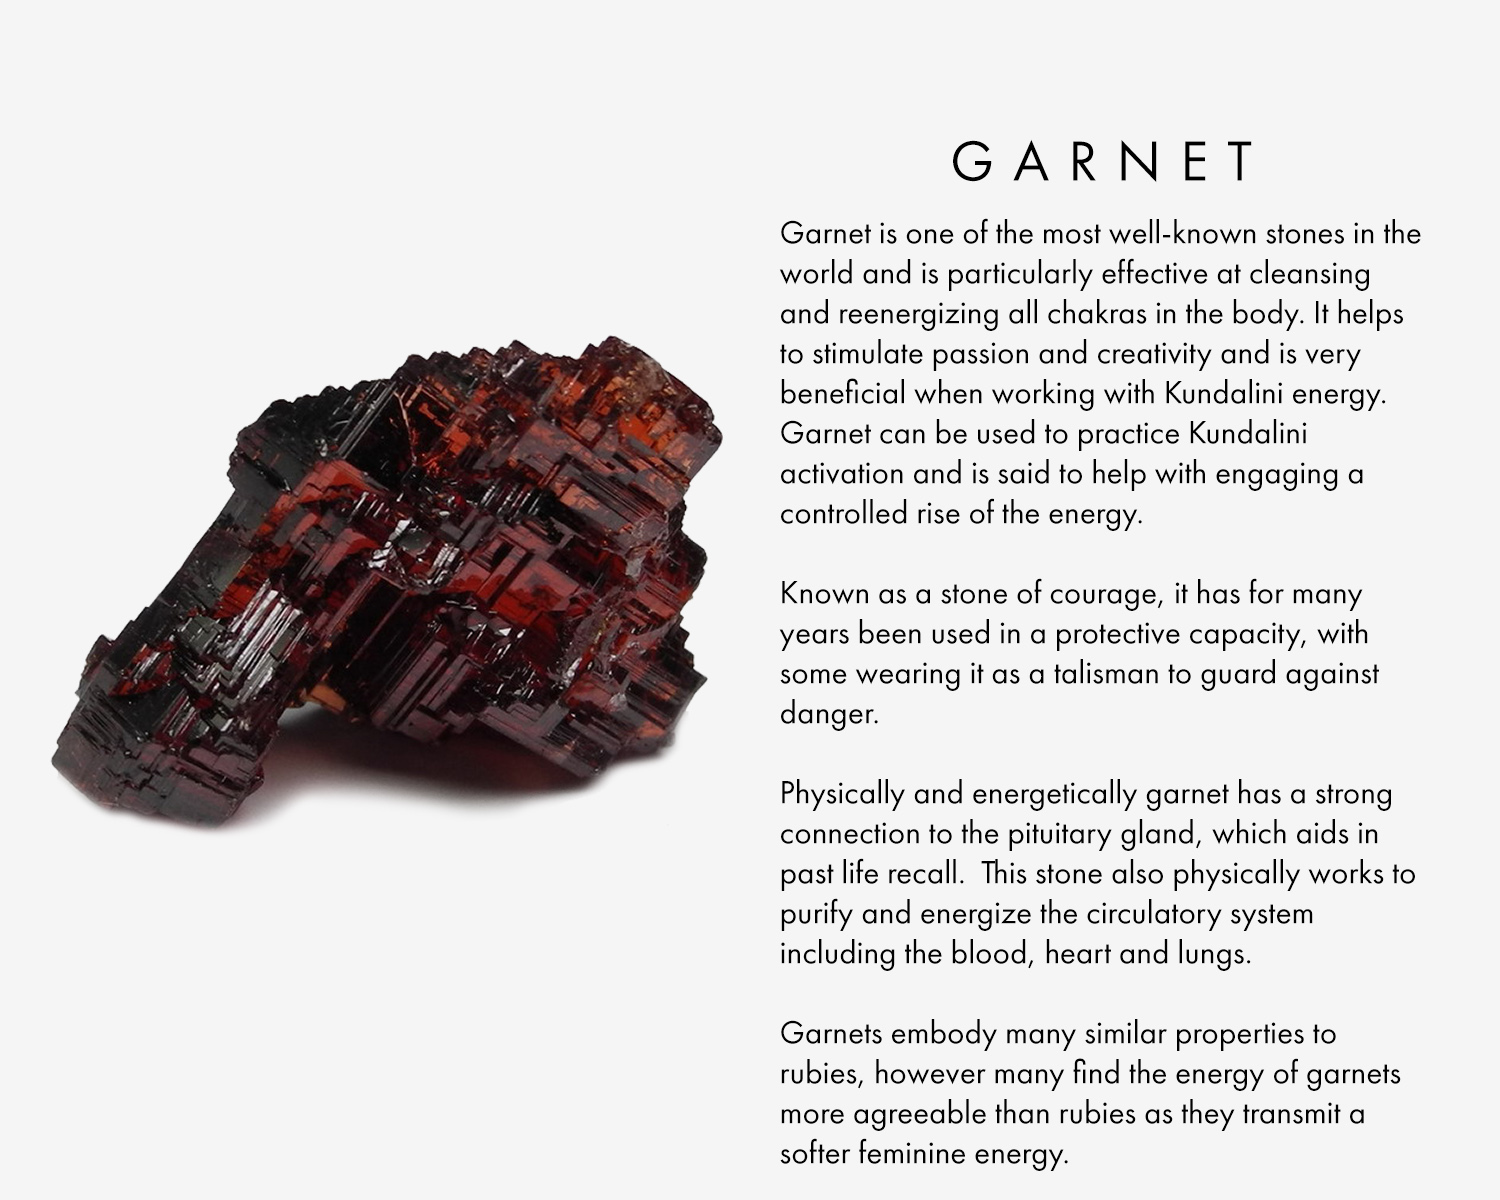 Garnet is one of the most well-known stones in the world and is particularly effective at cleansing and re-energizing all chakras in the body. It helps to stimulate passion and creativity and is very beneficial when working with Kundalini energy. Garnet can be used to practice Kundalini activation and is said to help with engaging a controlled rise of the energy.   Known as a stone of courage, it has for many years been used in a protective capacity, with some wearing it as a talisman to guard against danger.  Physically and energetically garnet has a strong connection to the pituitary gland, which aids in past life recall. This stone also physically works to purify and energize the circulatory system including the blood, heart and lungs.  Garnets embody many similar properties to rubies, however many find the energy of garnets more agreeable than rubies as they transmit a softer feminine energy.